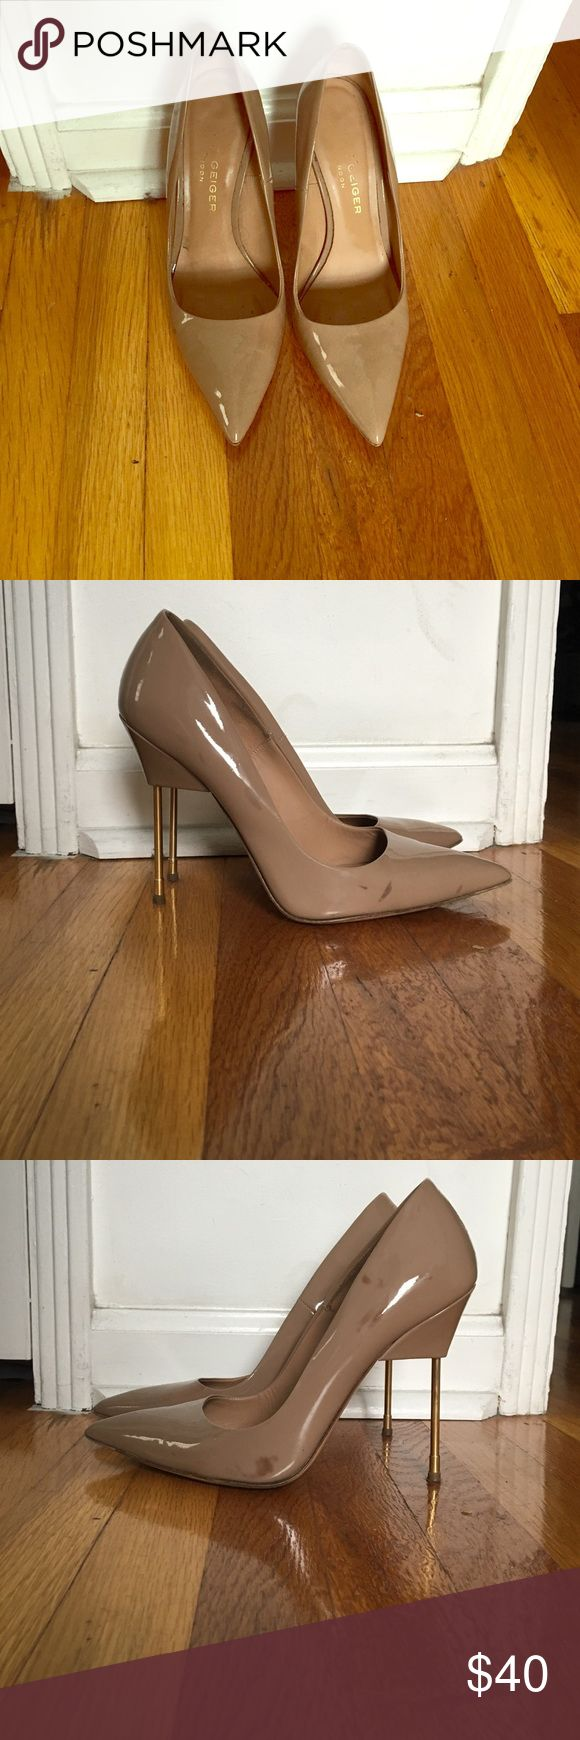 Kurt Geiger London pumps Made in Italy - size 40 EU. Fits like 9 US. Few marks as shown in photos kurt geiger Shoes Heels